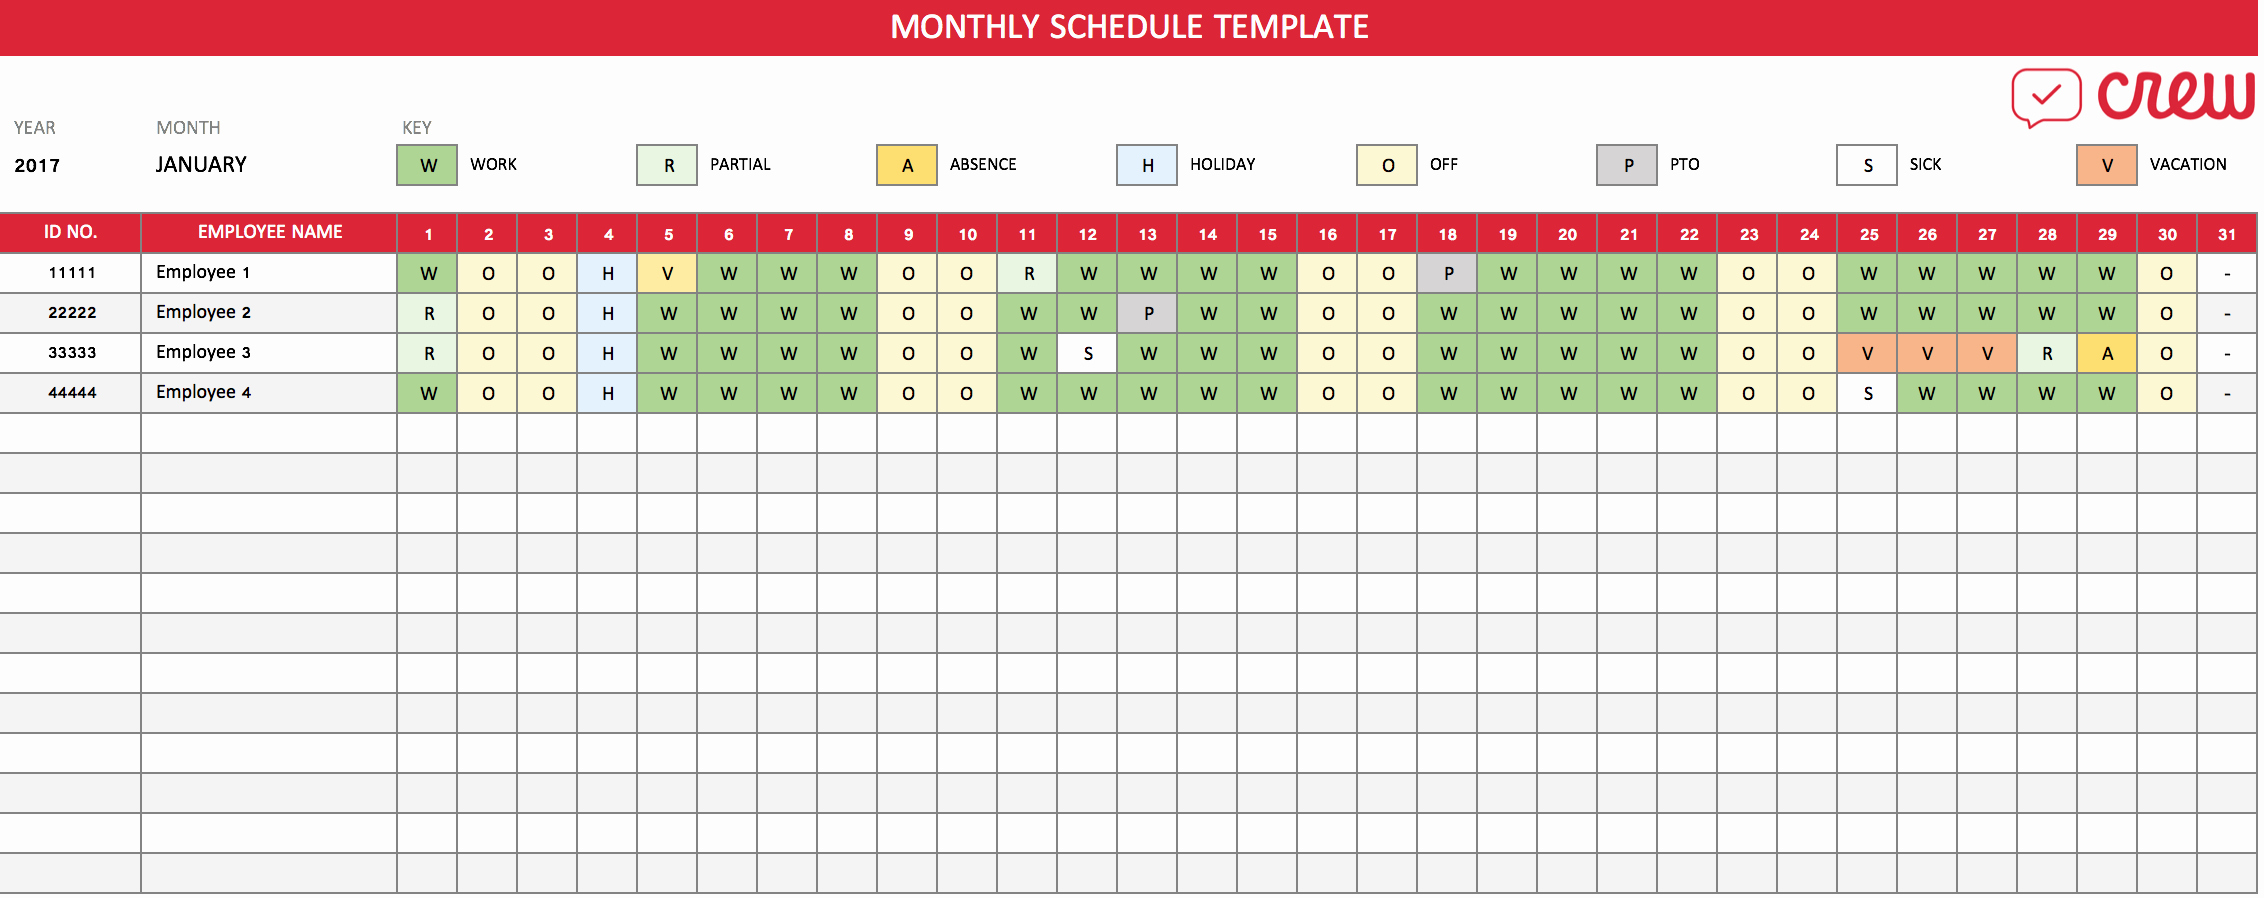 Employee Schedule Template Free Download Luxury Free Monthly Work Schedule Template Crew